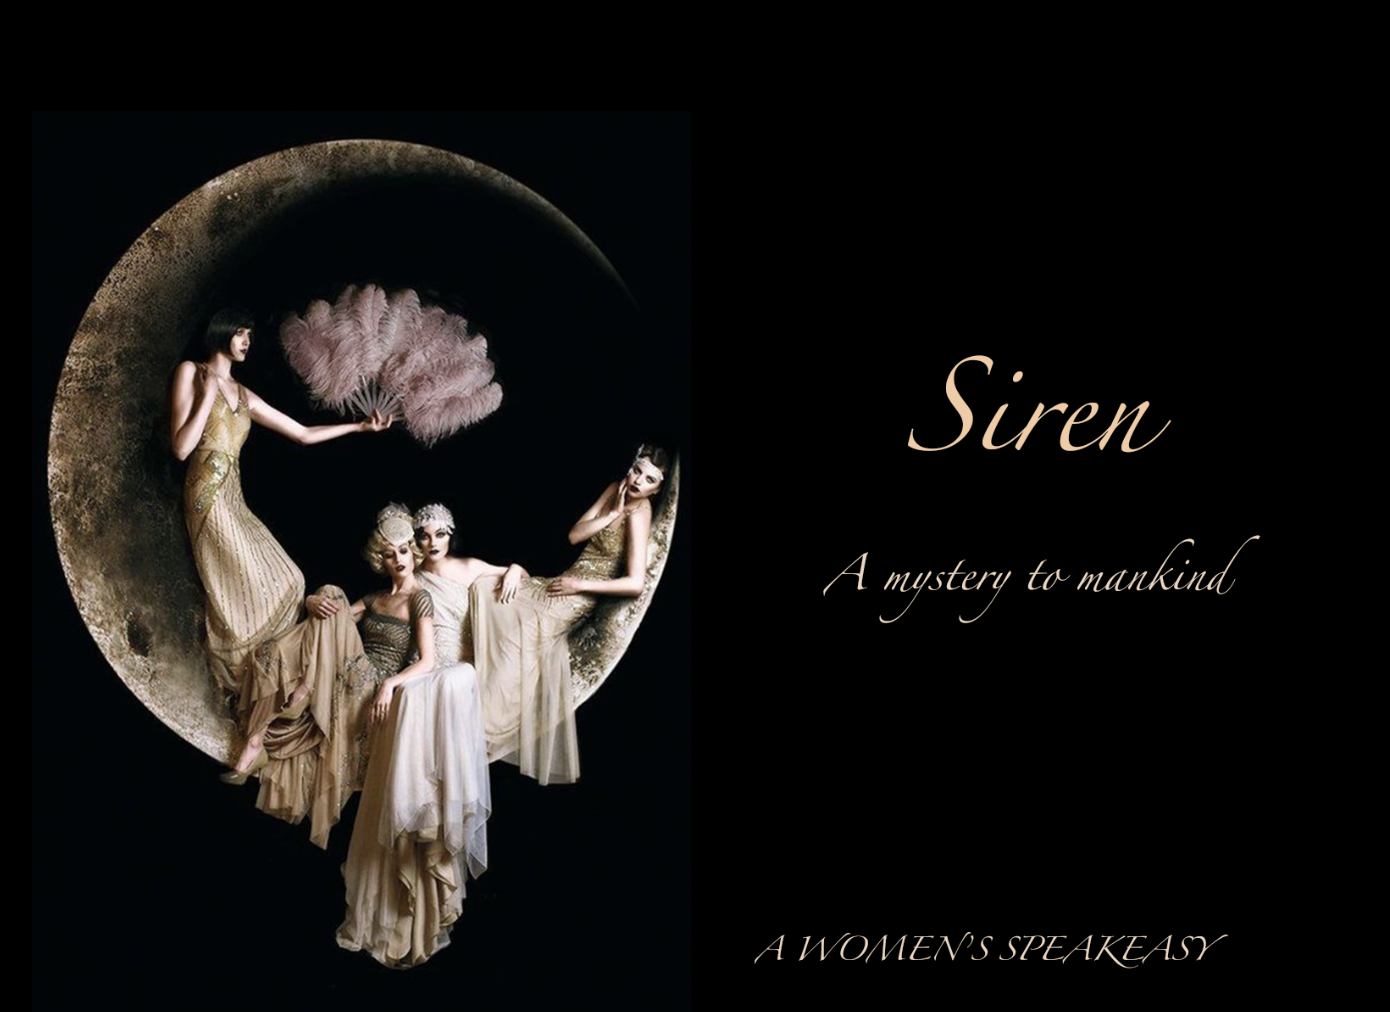 siren billboard1.png